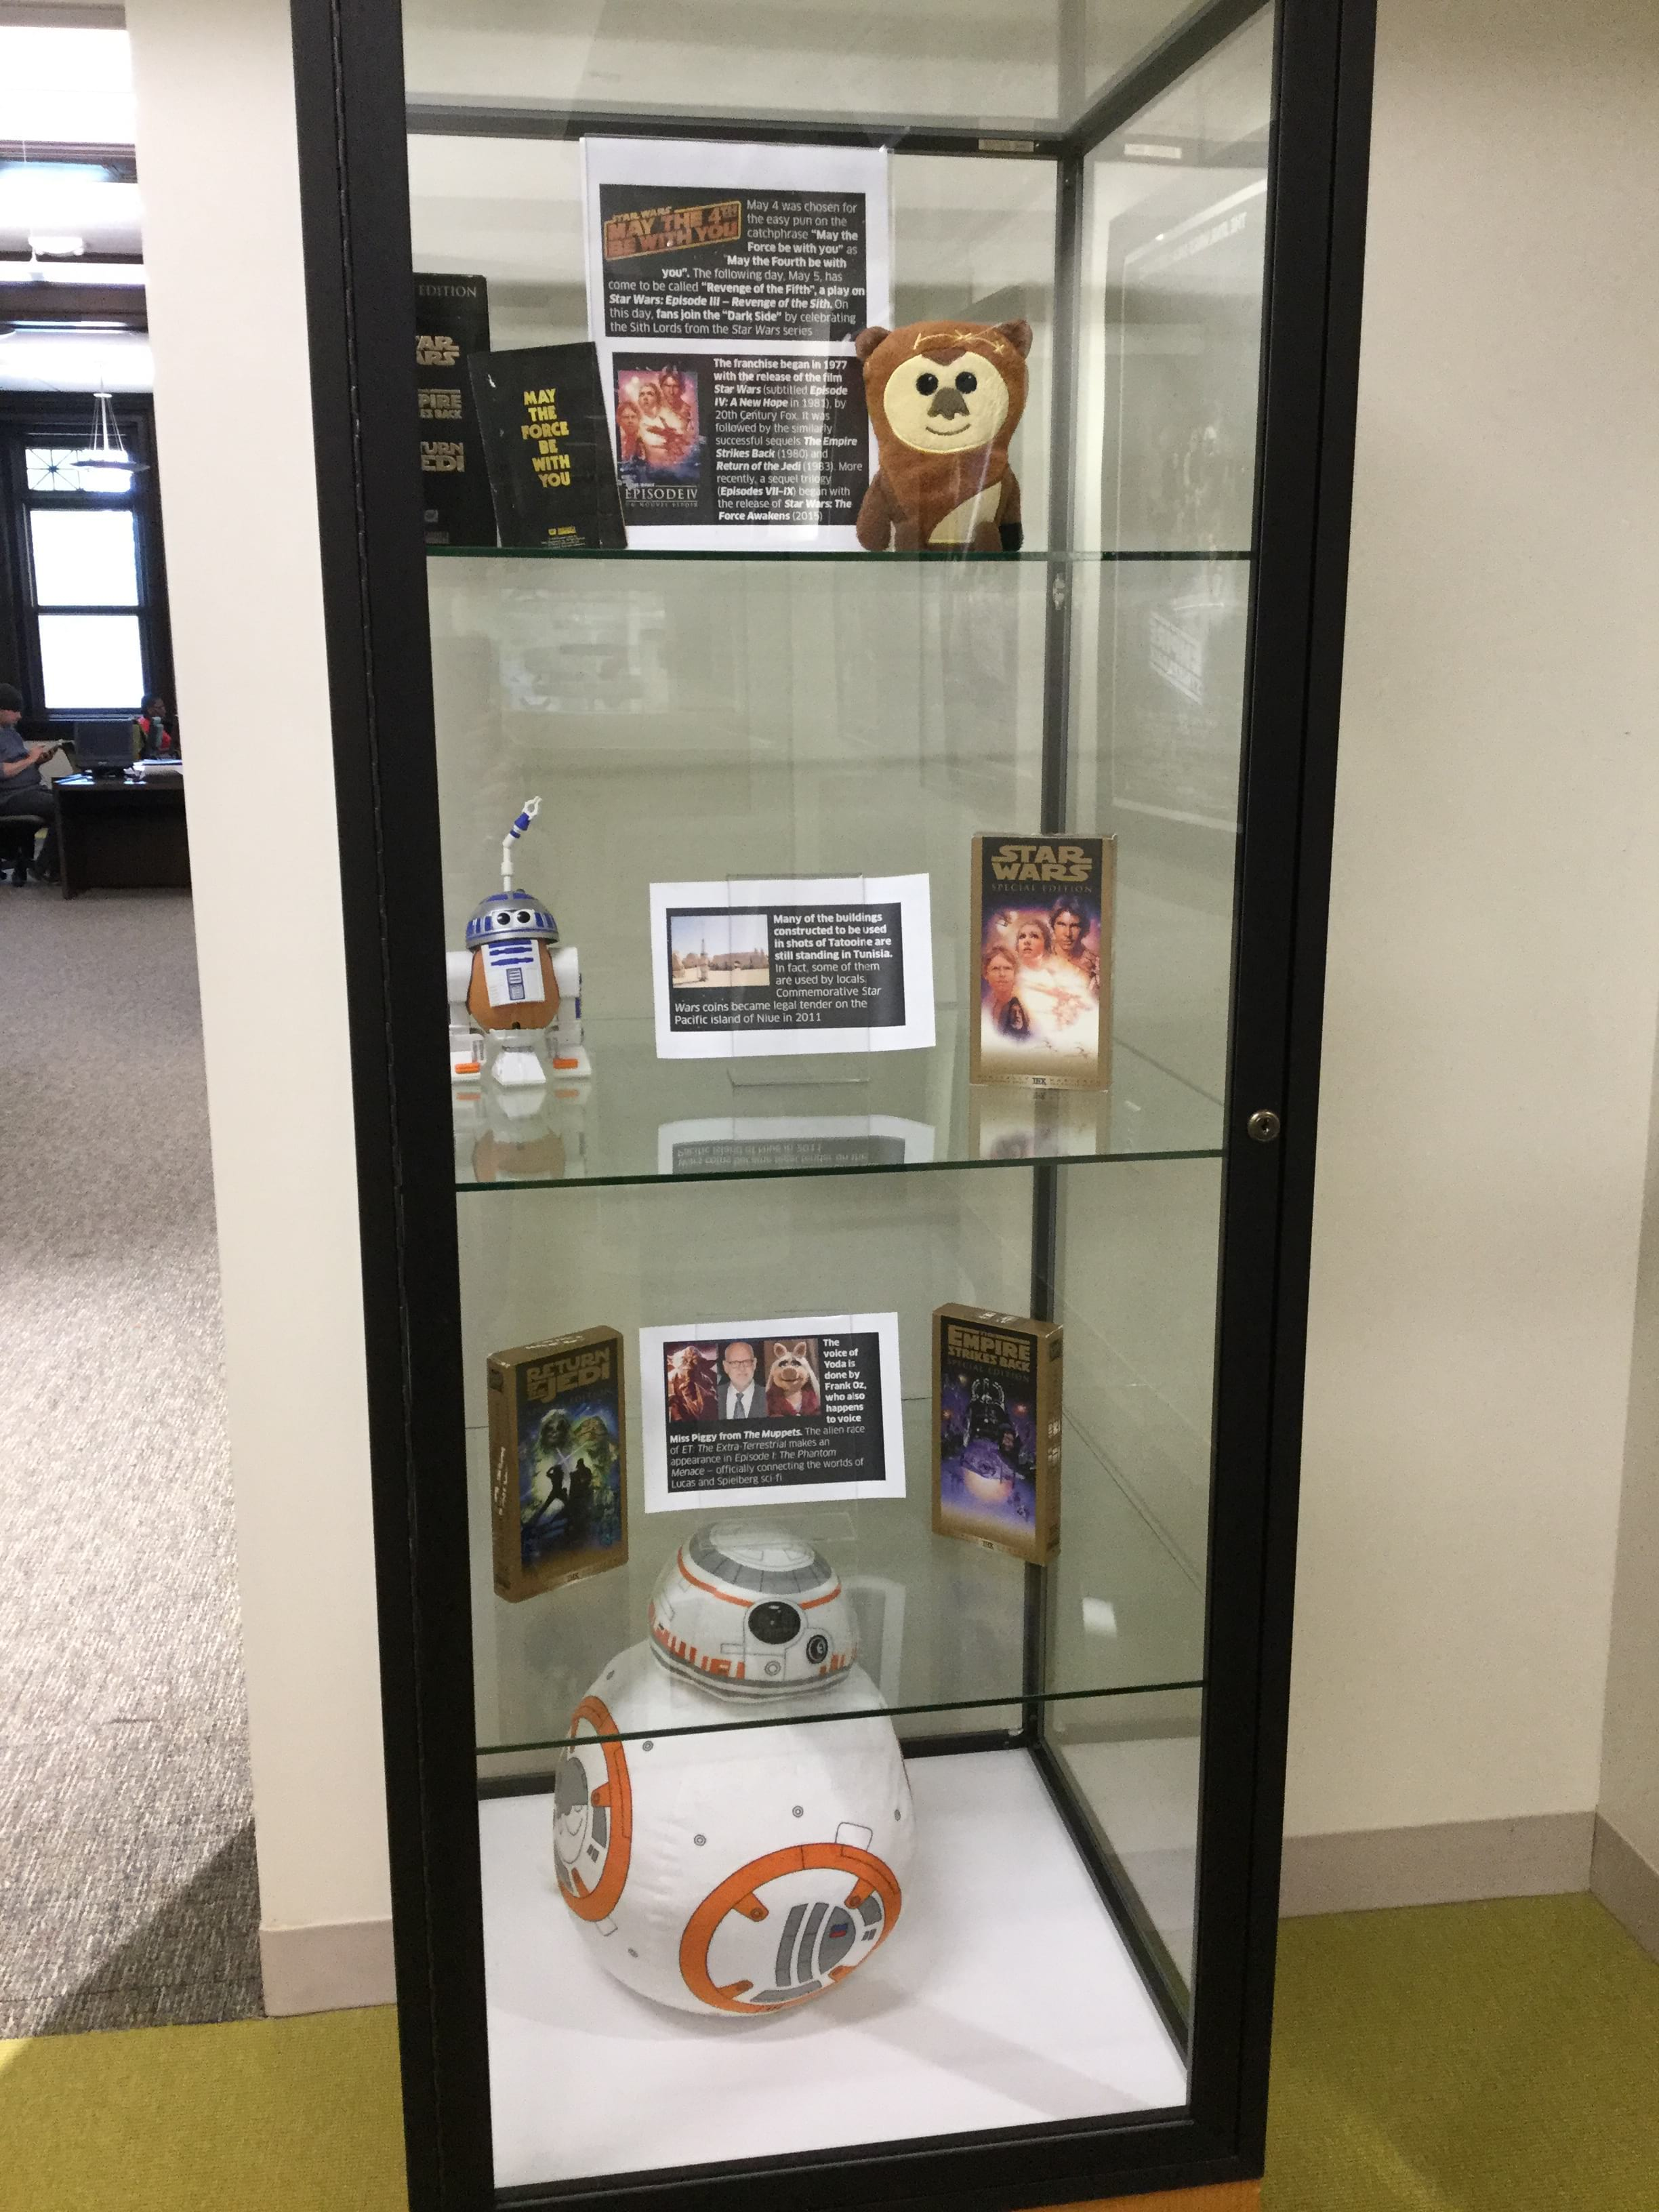 Display case with miscellaneous Star Wars paraphernalia